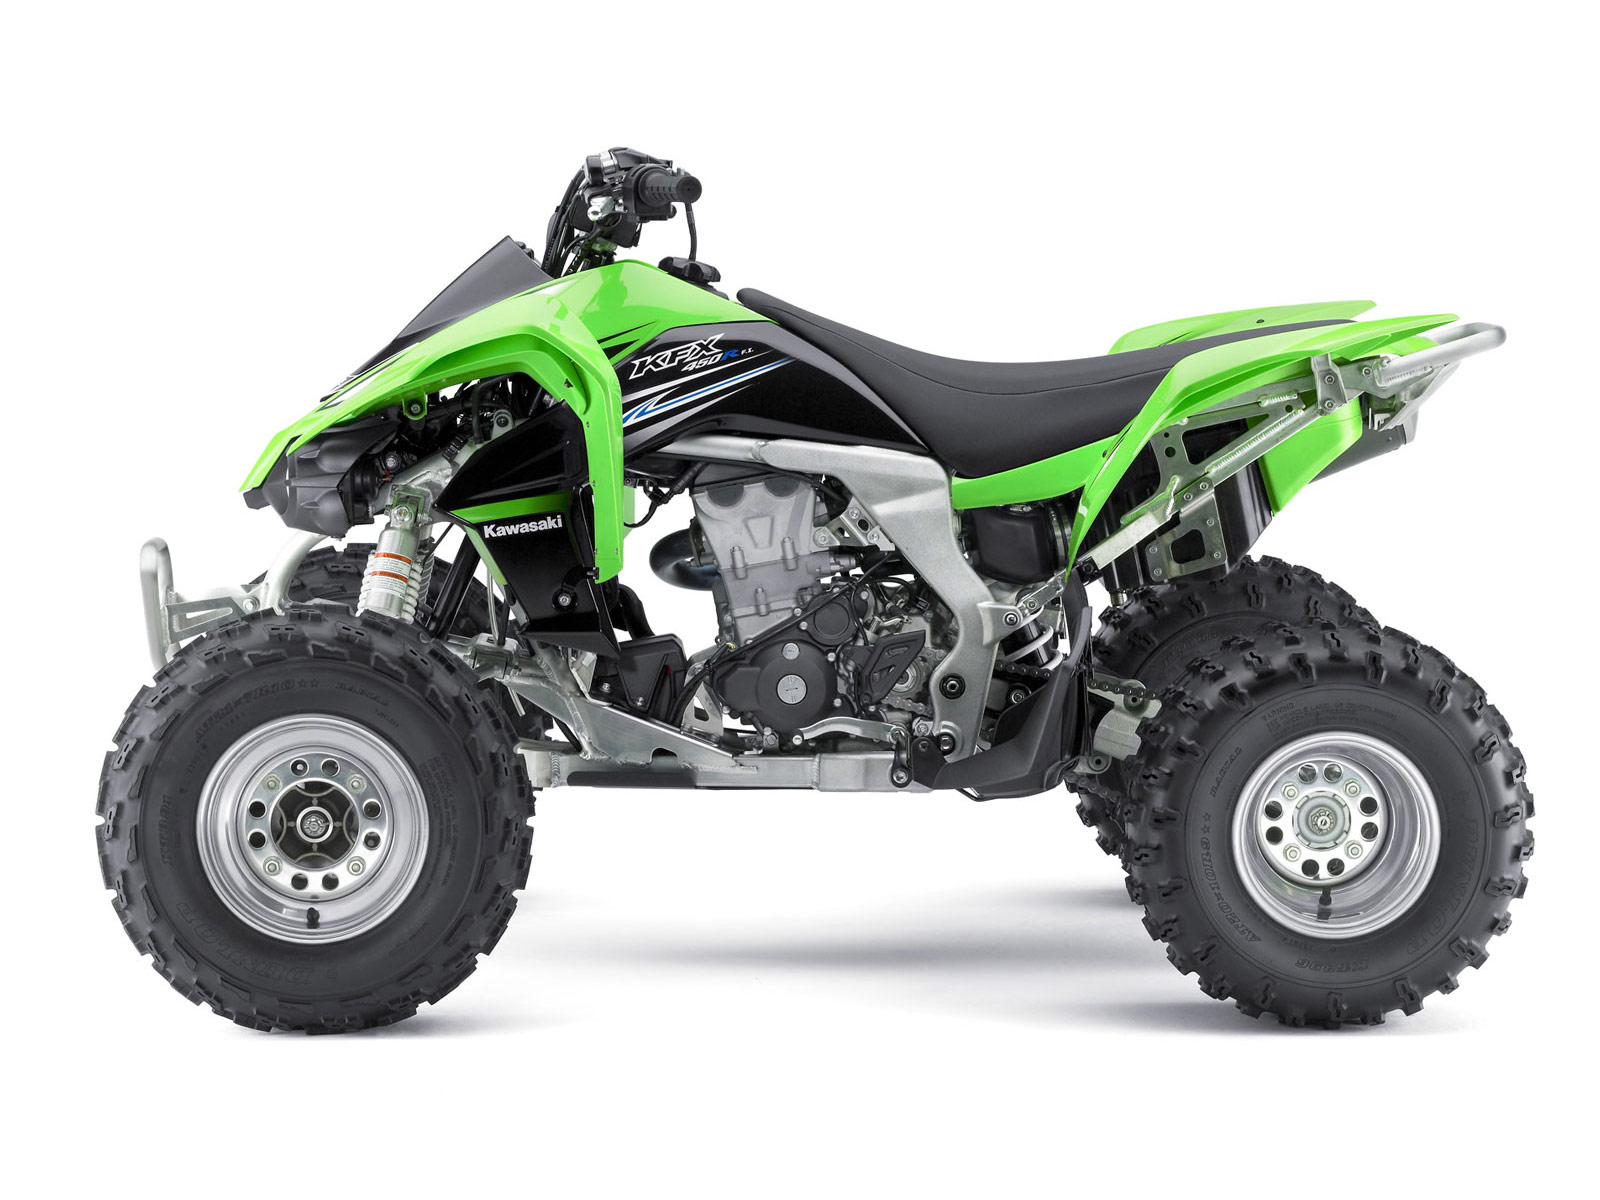 2011 kawasaki kfx450r atv pictures accident lawyers info. Black Bedroom Furniture Sets. Home Design Ideas